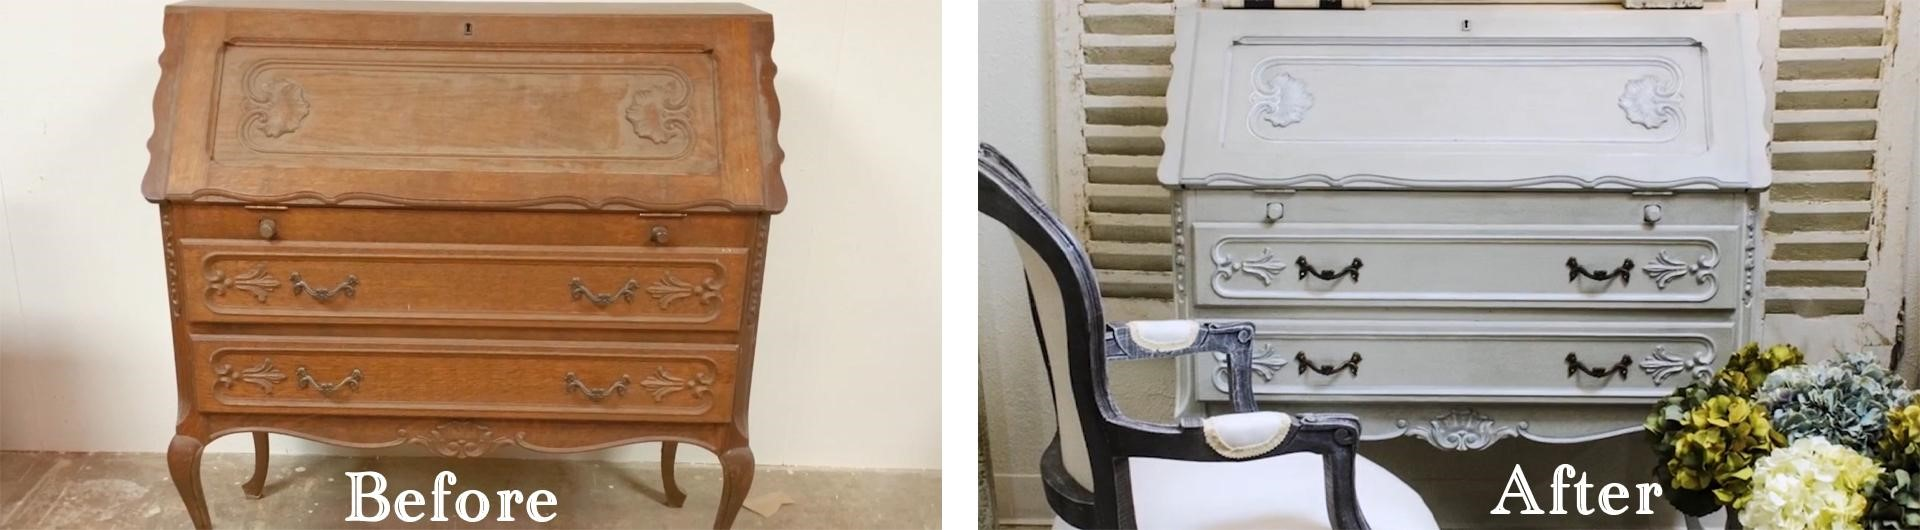 Amitha Verma French Gray Chalk Finish Paint makeover before and after on an antique secretary desk in Village Antiques showroom.